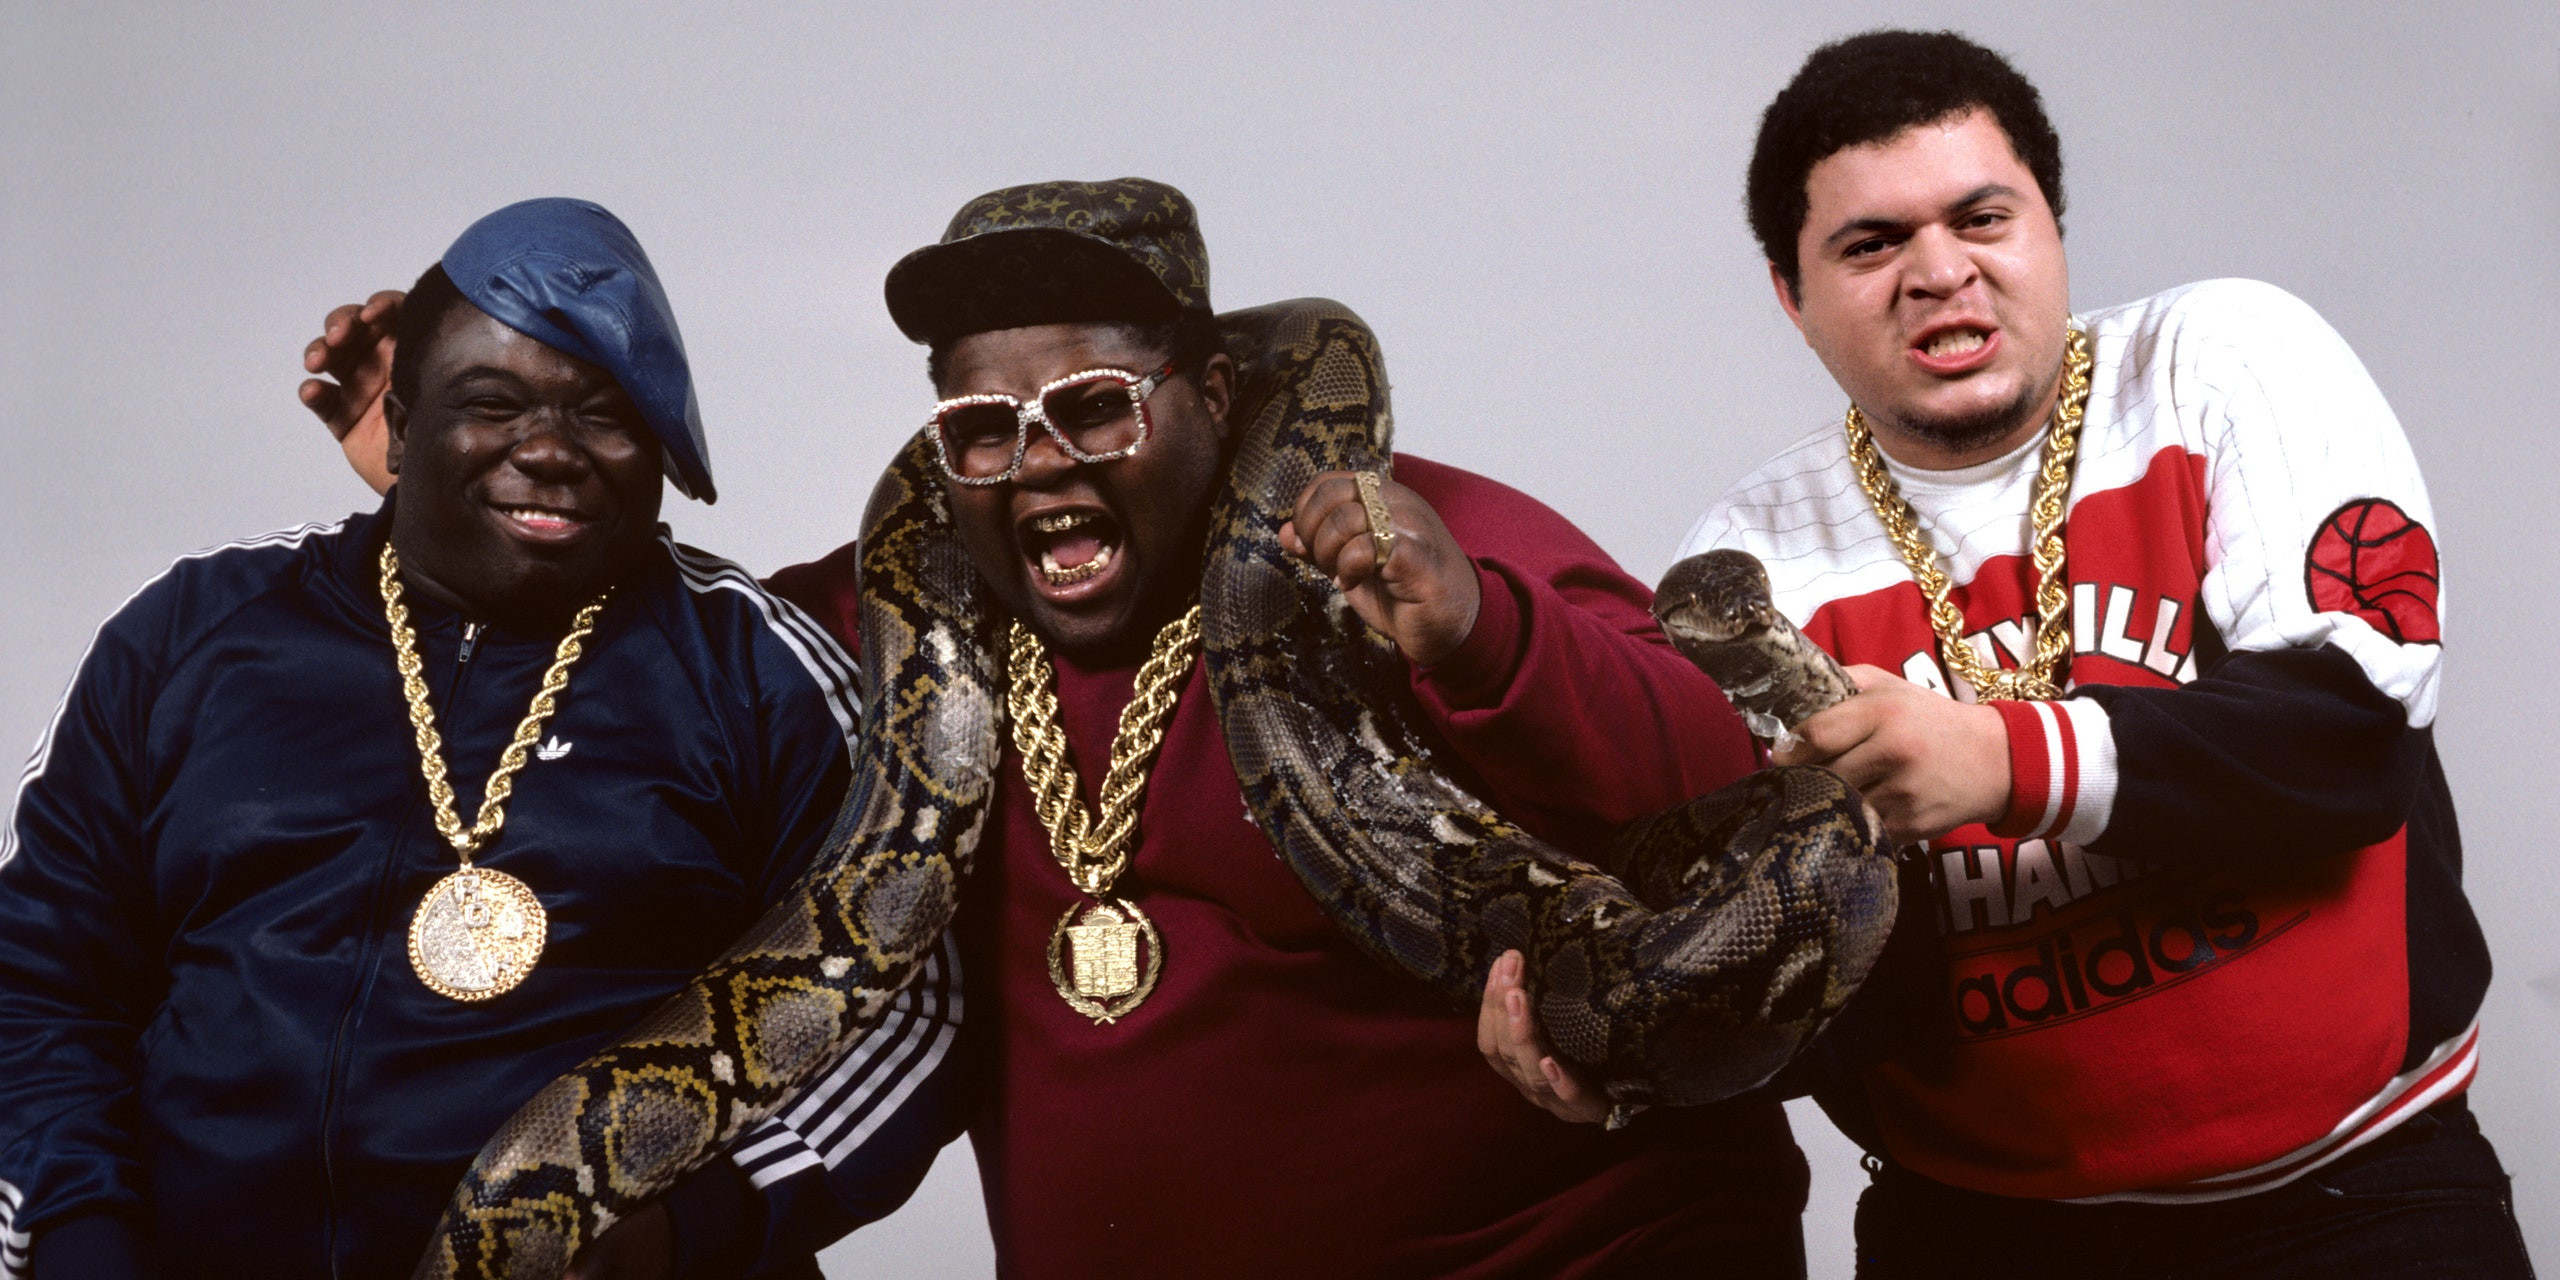 Rapper, Prince Markie Dee of 1980s hip-hop group the Fat Boys, dies at 52